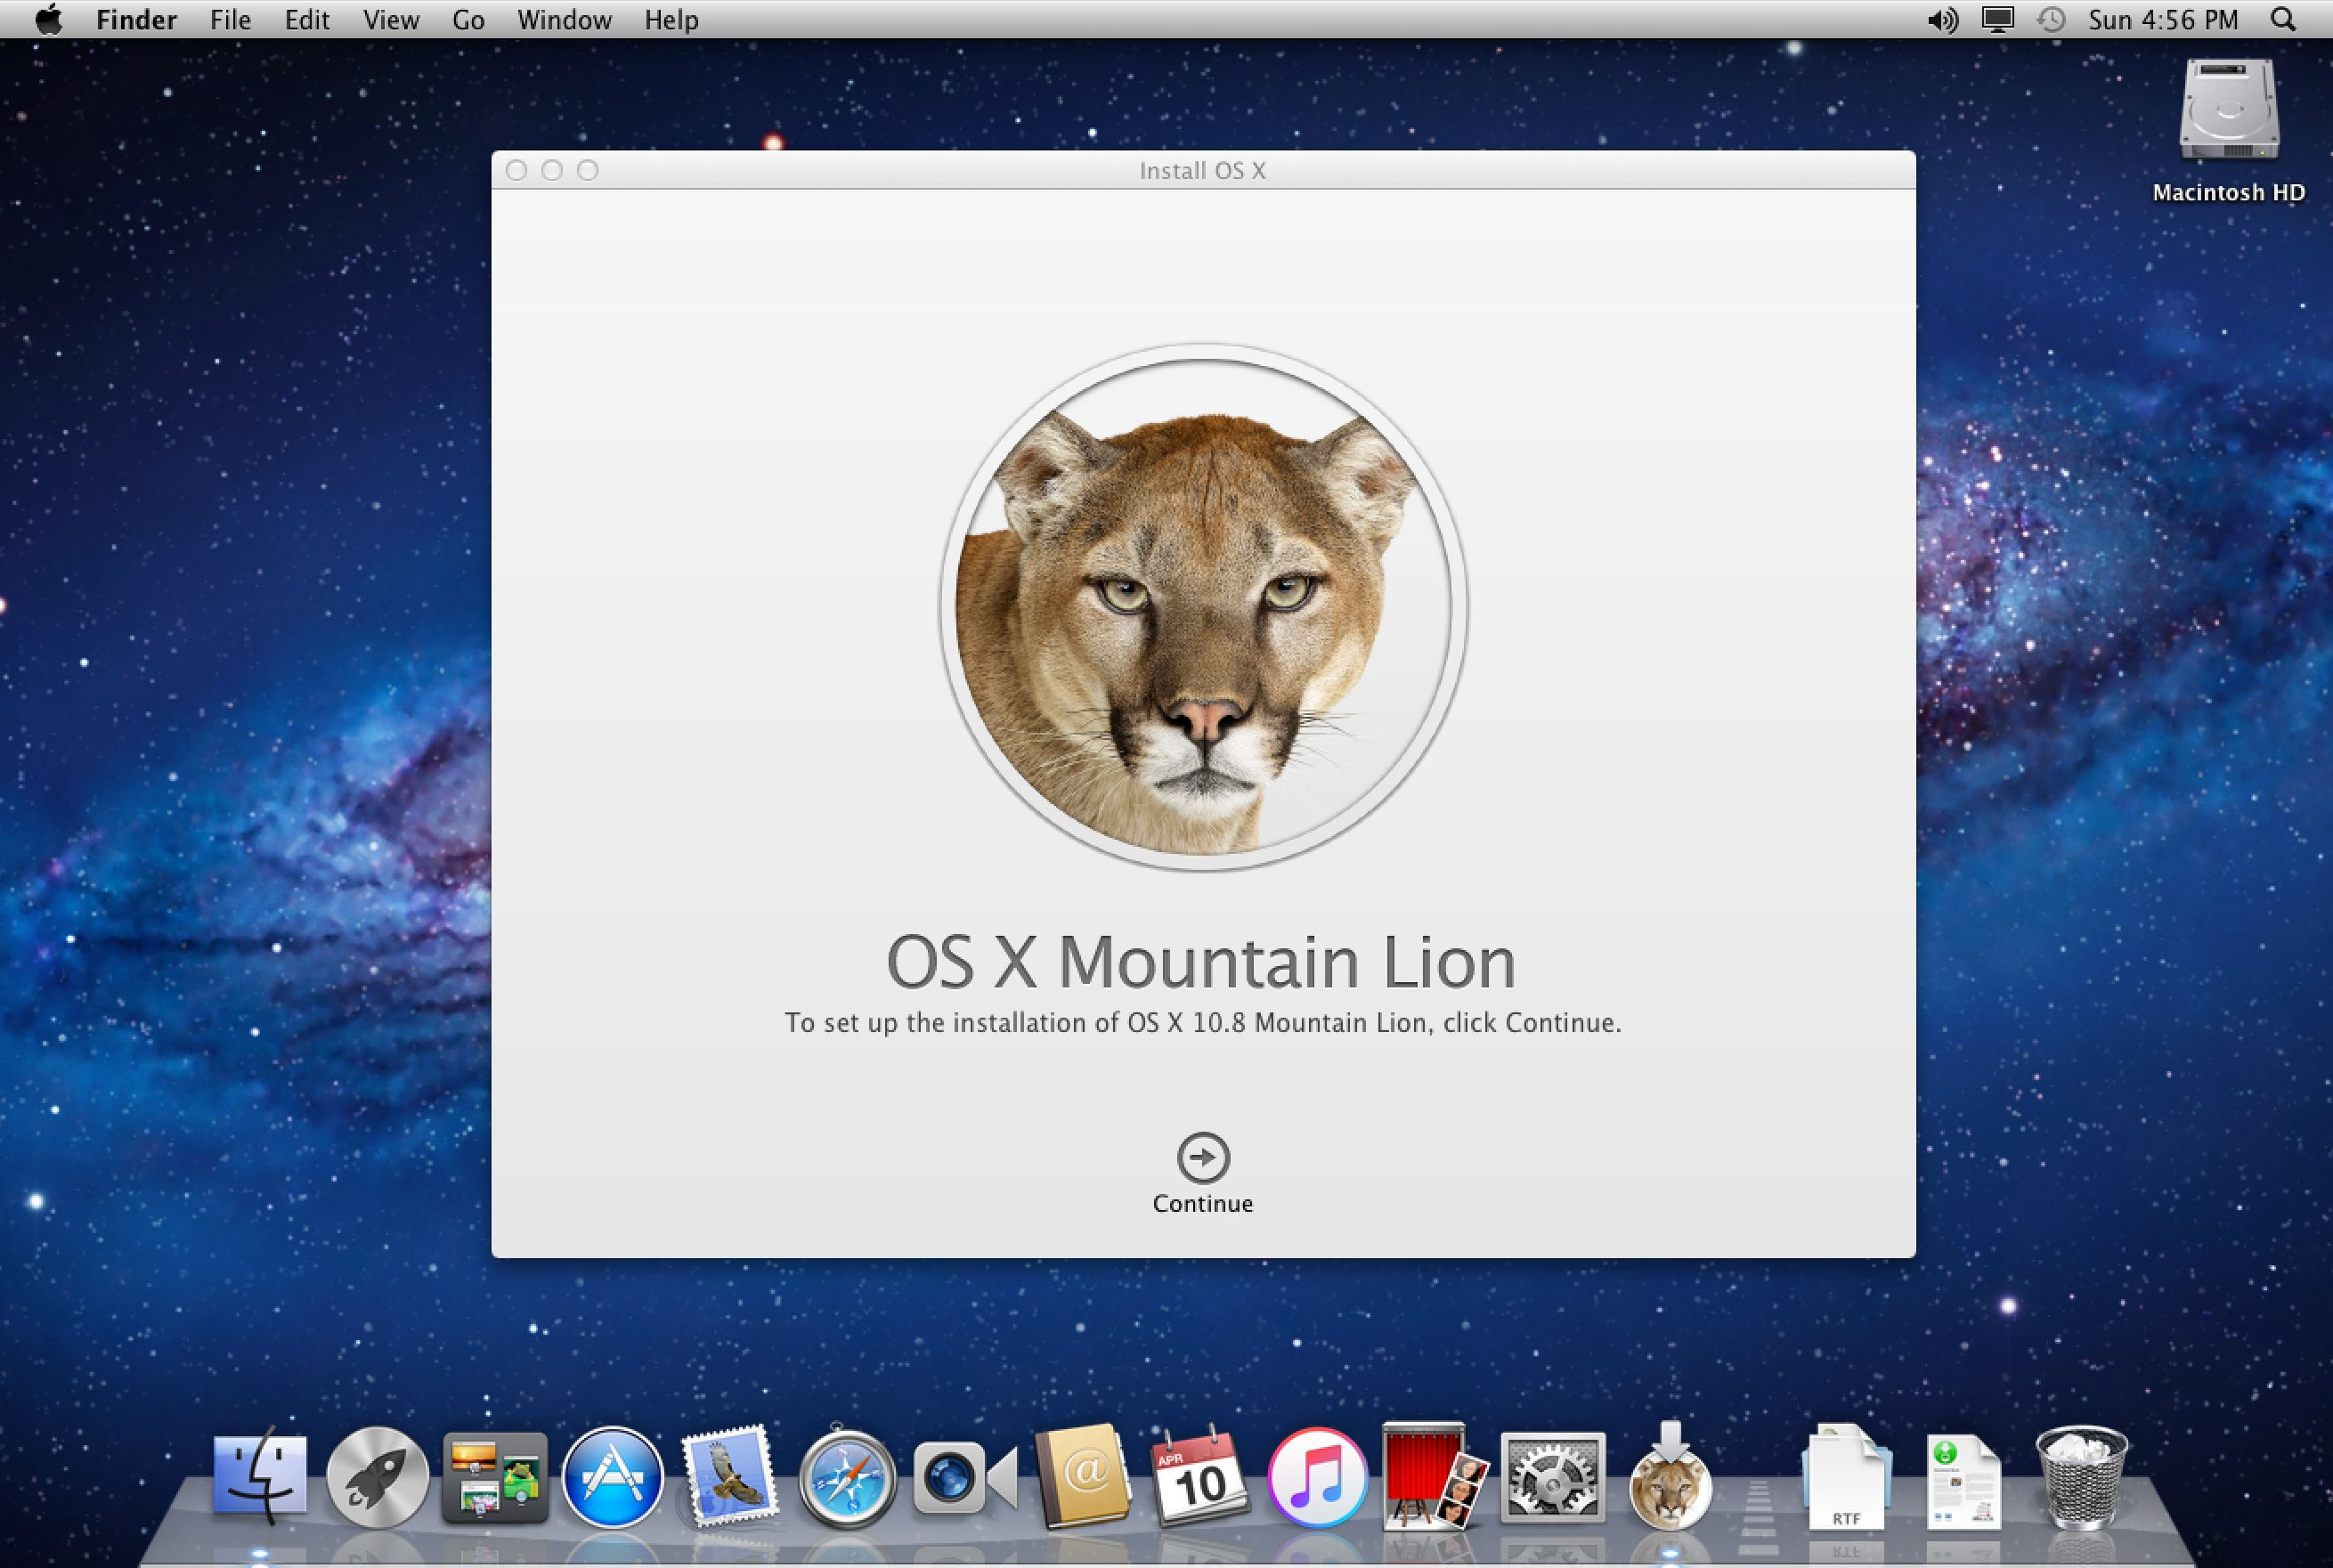 How to draw a coyote step 2 apps directories - Os X Mountain Lion Installer App